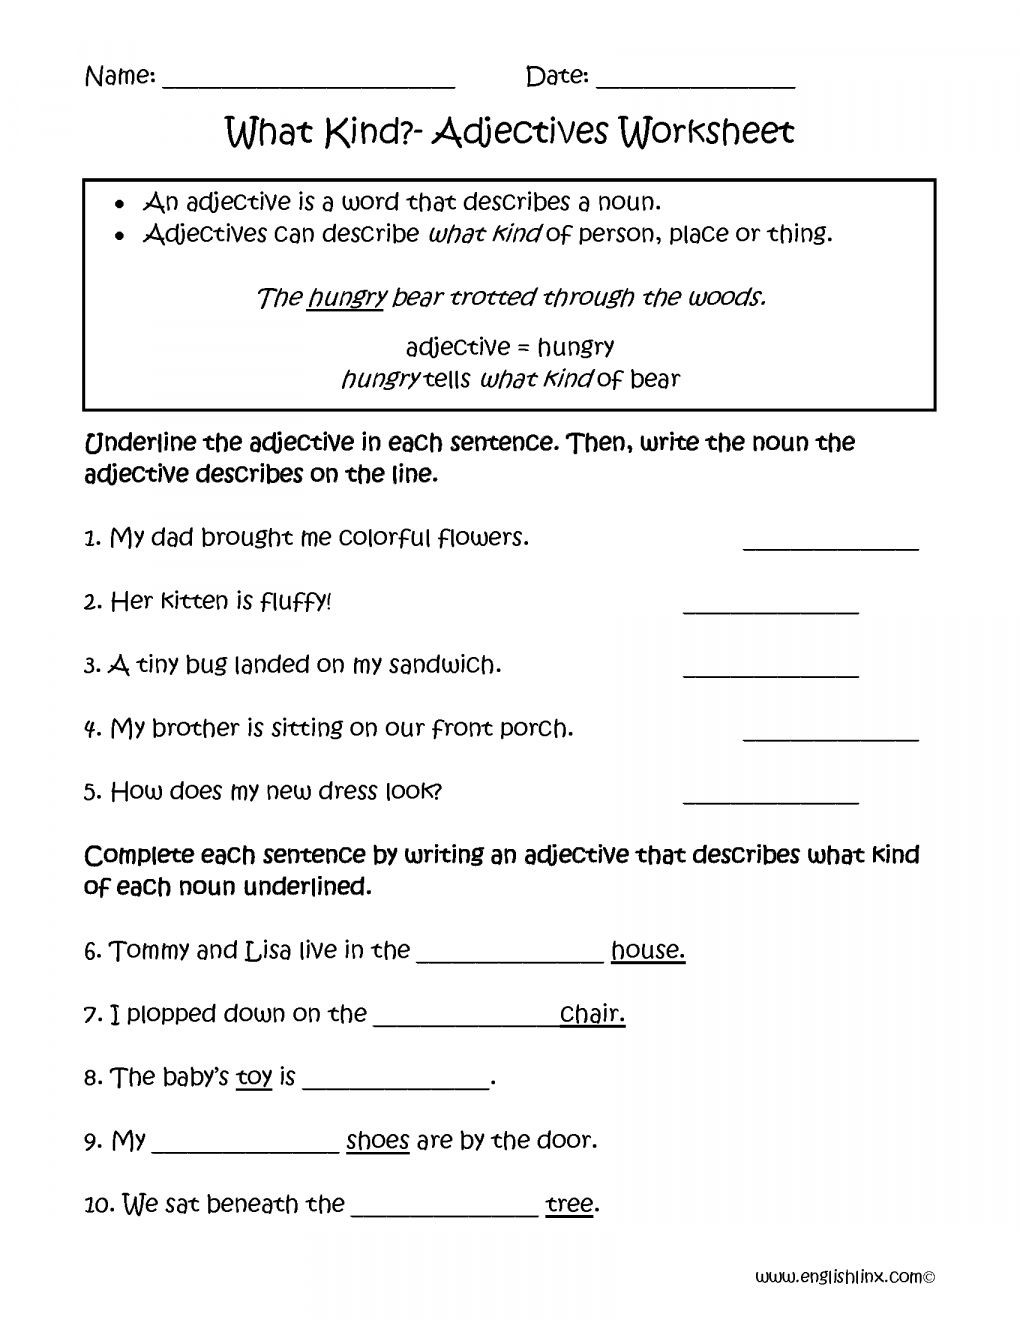 Adjective Worksheets 2nd Grade Adjectives and Articles Worksheet 4th Grade and Adjectives